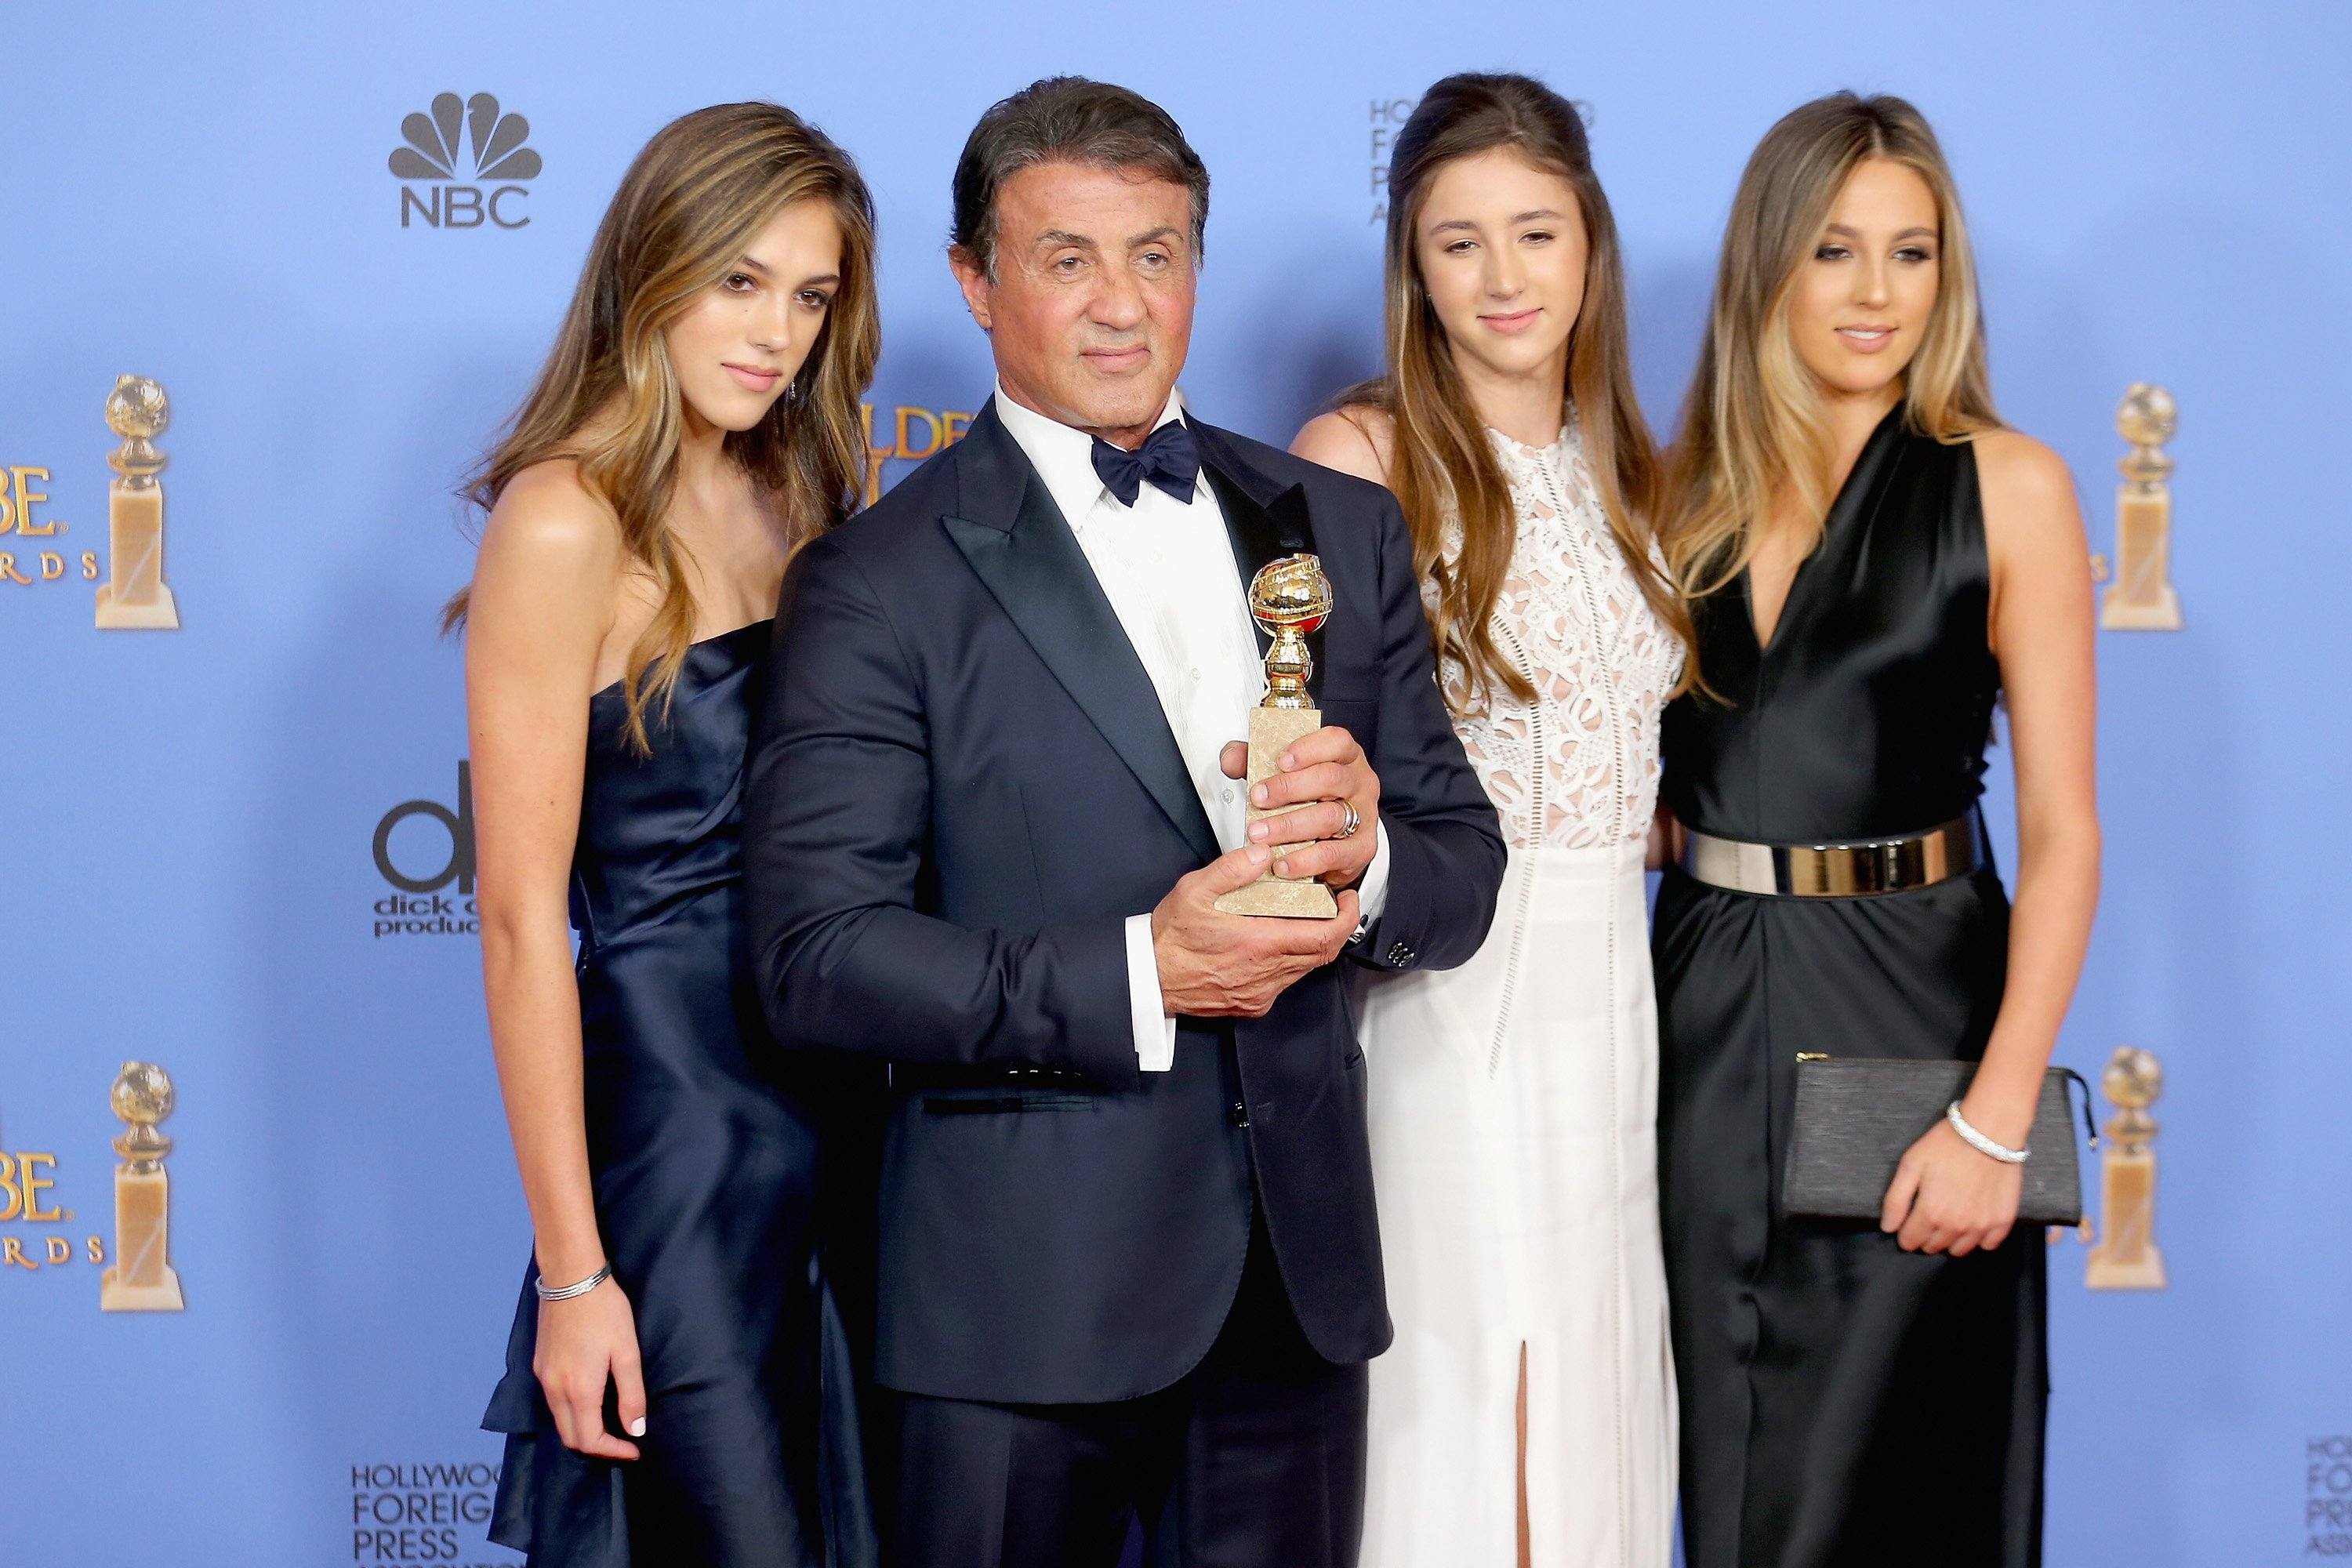 Sylvester Stallone and his three daughters Sophia, Sistine, and Scarlet. I Image: Getty Images.